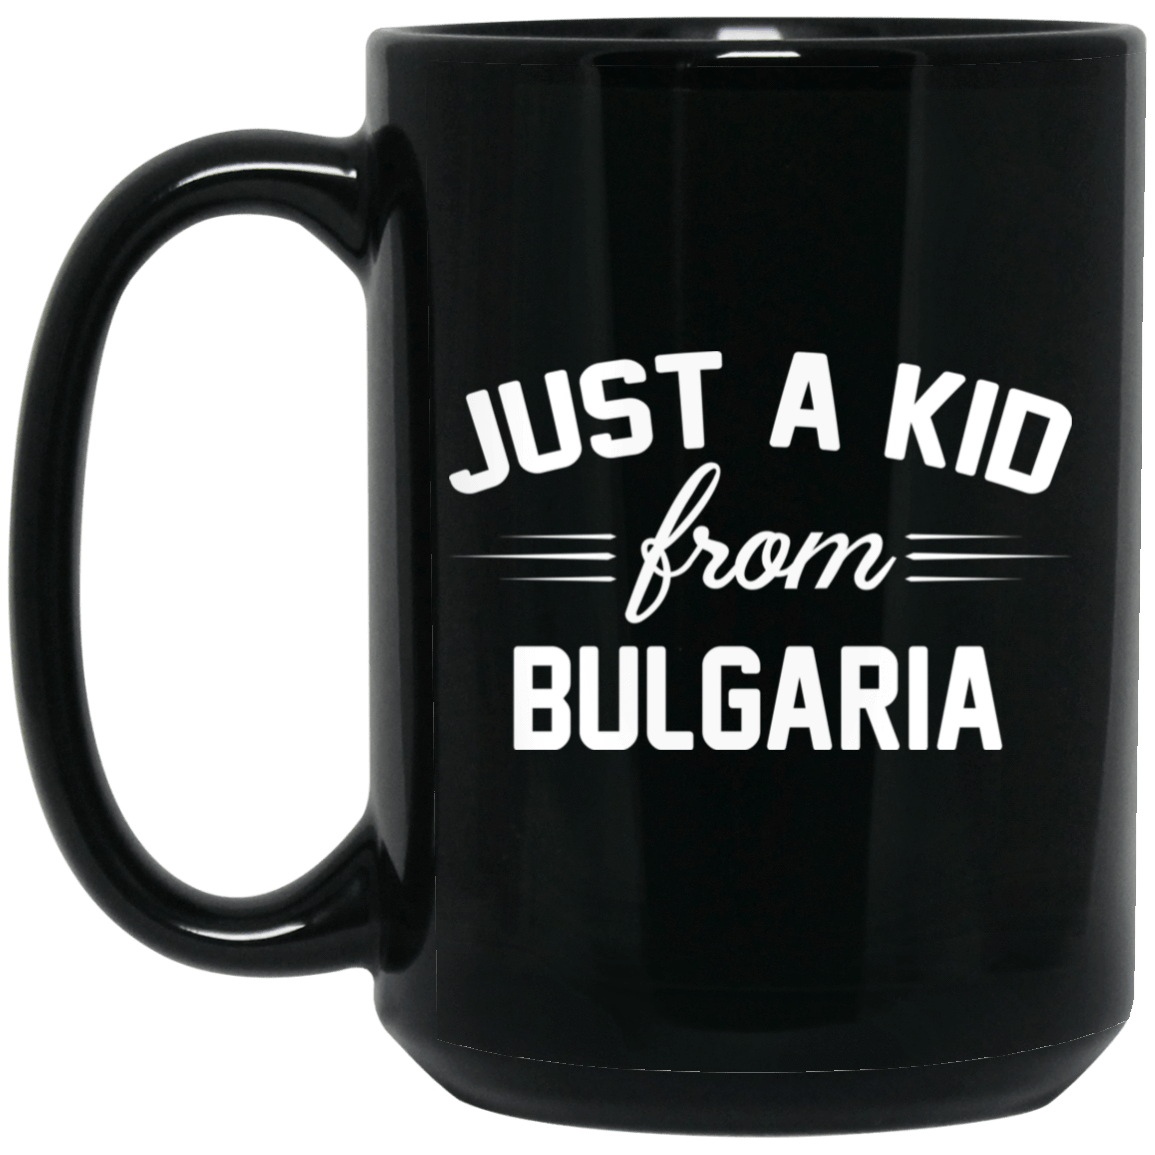 Just A Kid Store | Bulgaria Mug 1066-10182-72111294-49311 - Tee Ript